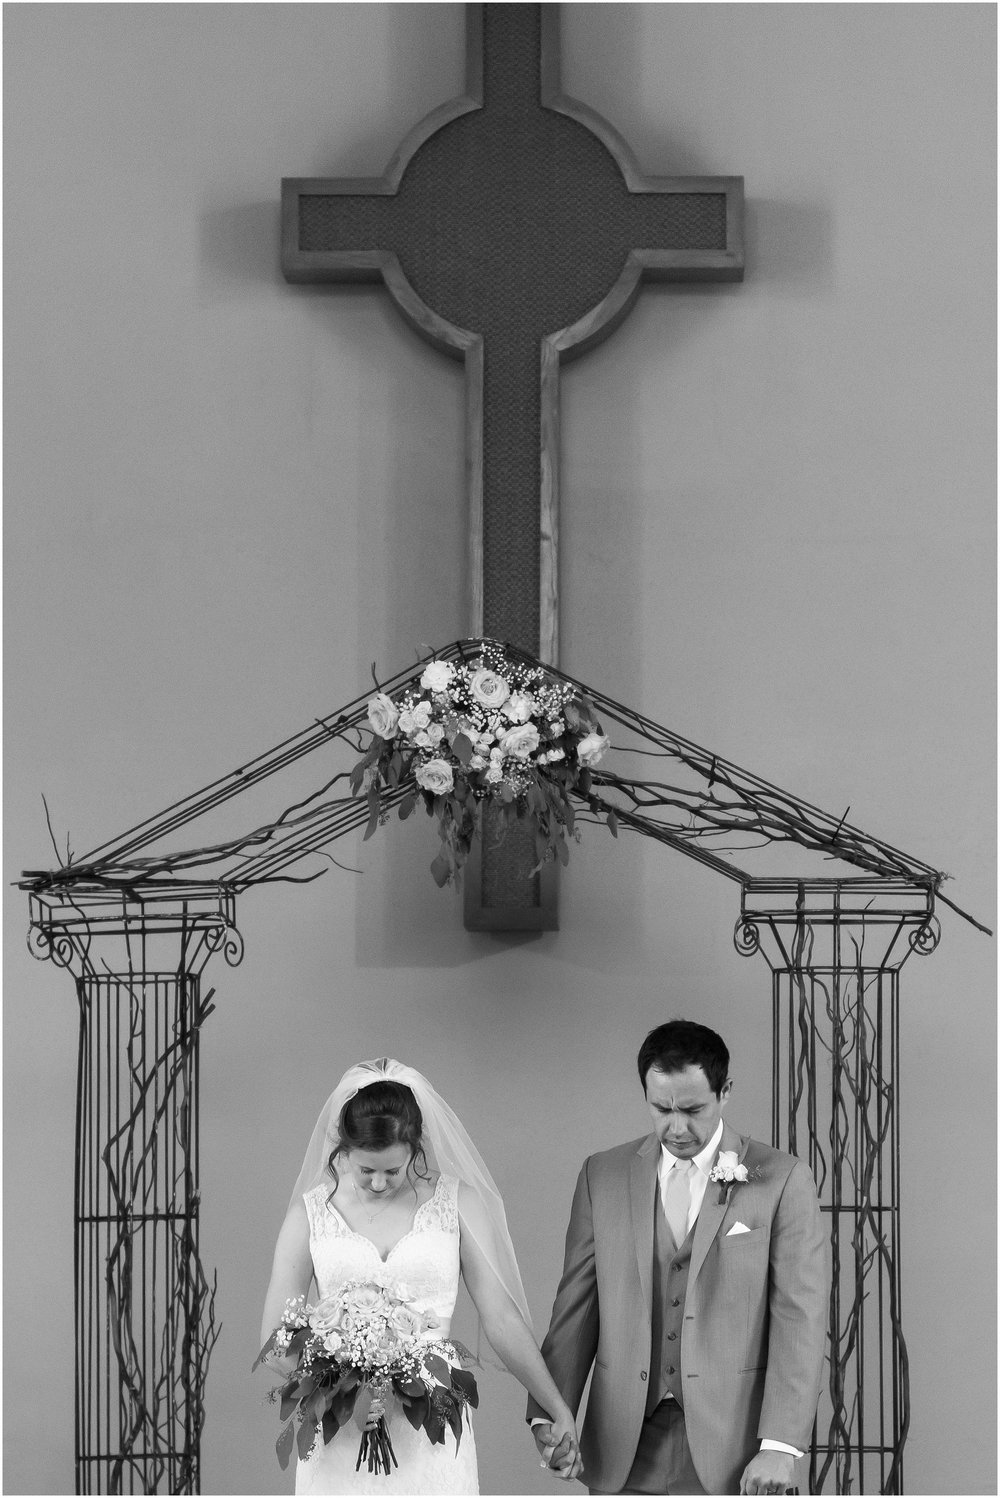 Bride and groom praying at the altar - Jason & Melaina Photography - www.jasonandmelaina.com